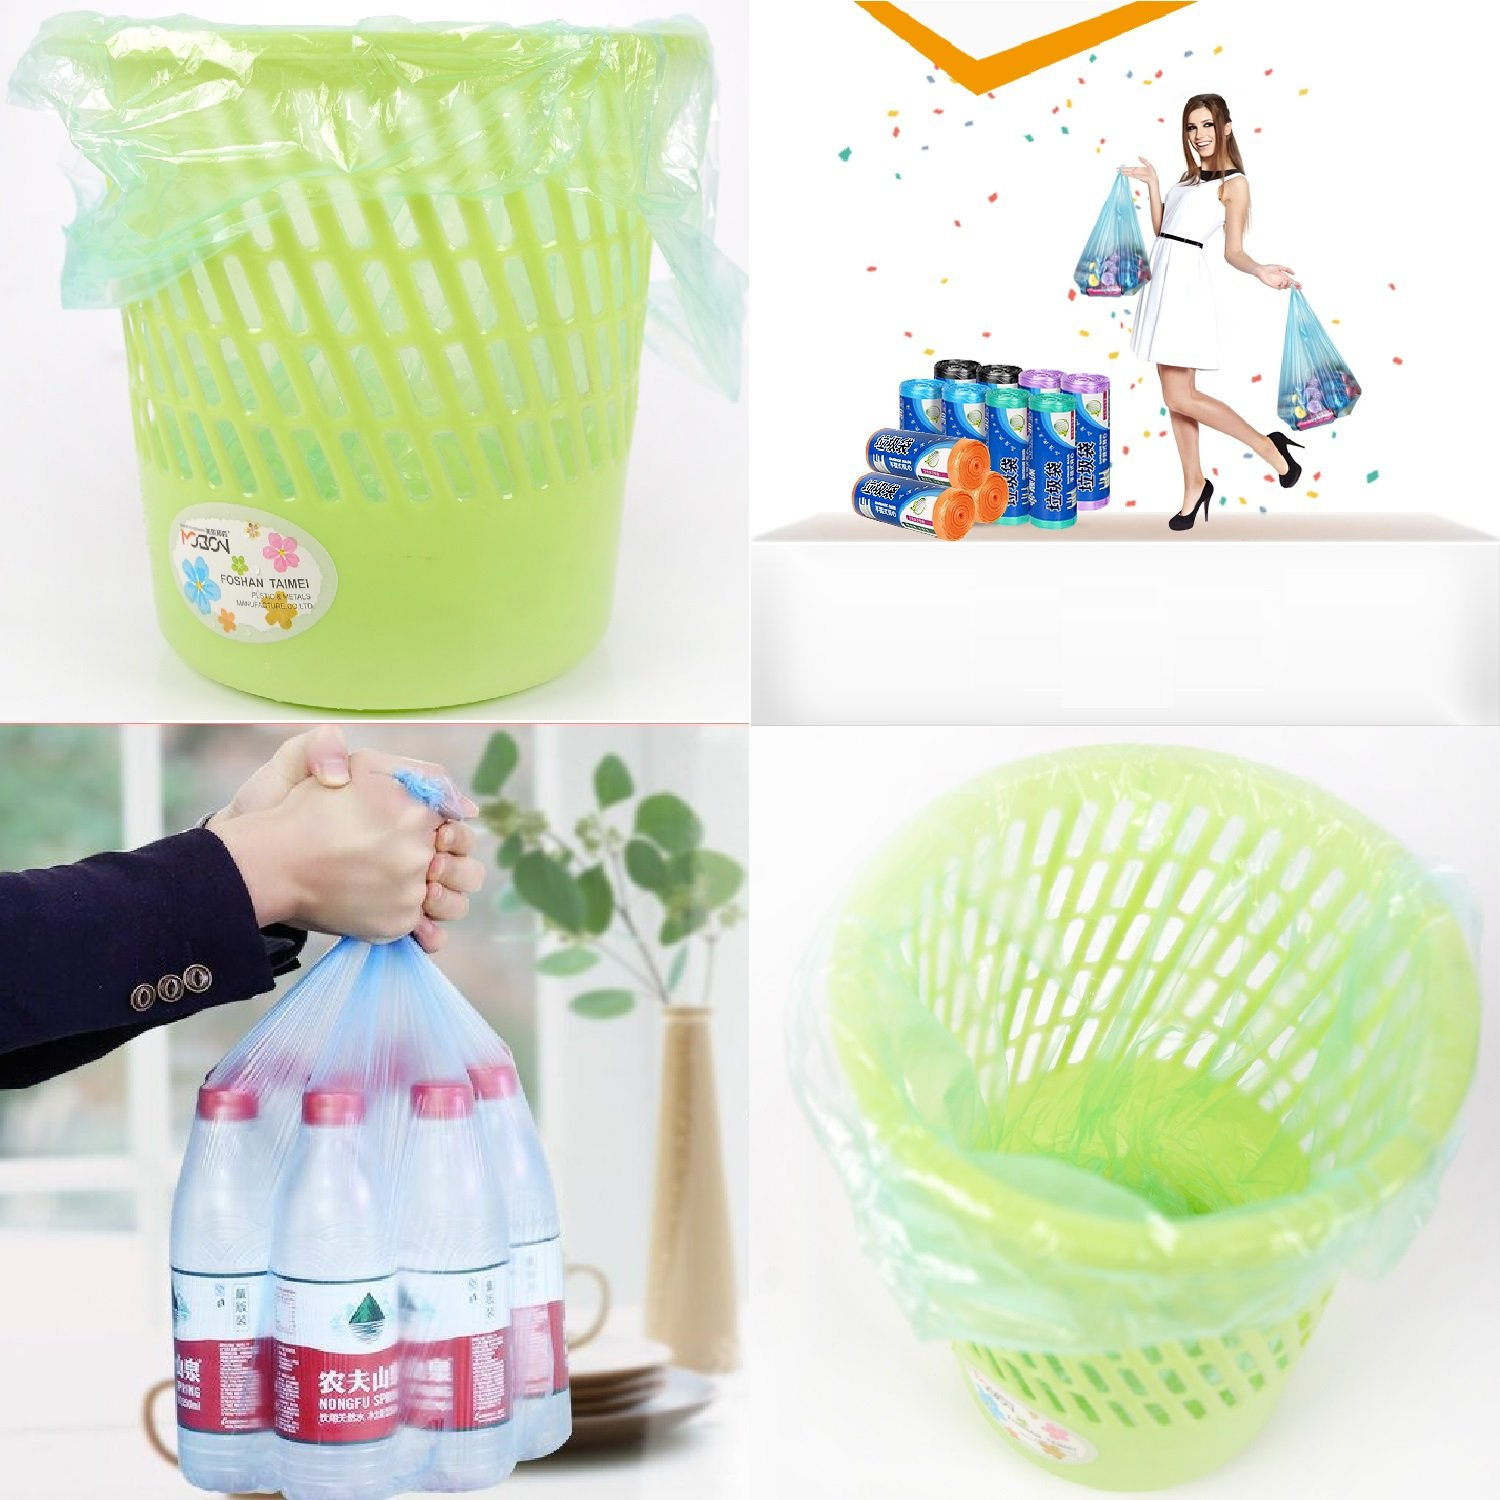 4 Rolls Garbage Bag -- Plastic Odorless Thickening Reinforcement Points Off Type Vest Type Portable Bag Environmental Protection Household Garbage Bags for Home And Hotel Color(Blue、Green、Pink、Black) by Only Supermarket (Image #7)